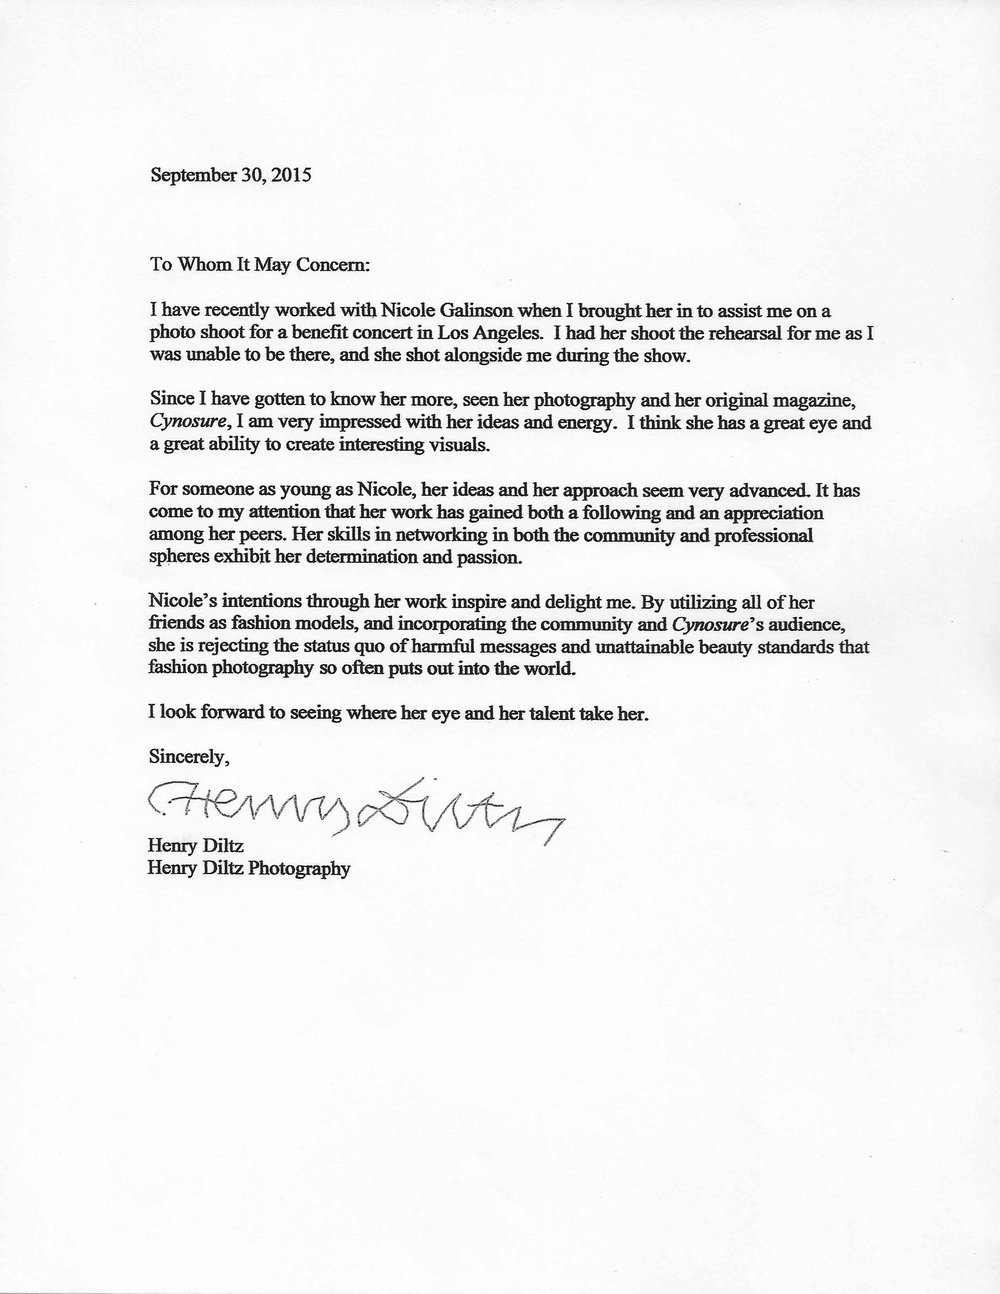 henry diltz letter of recommendation